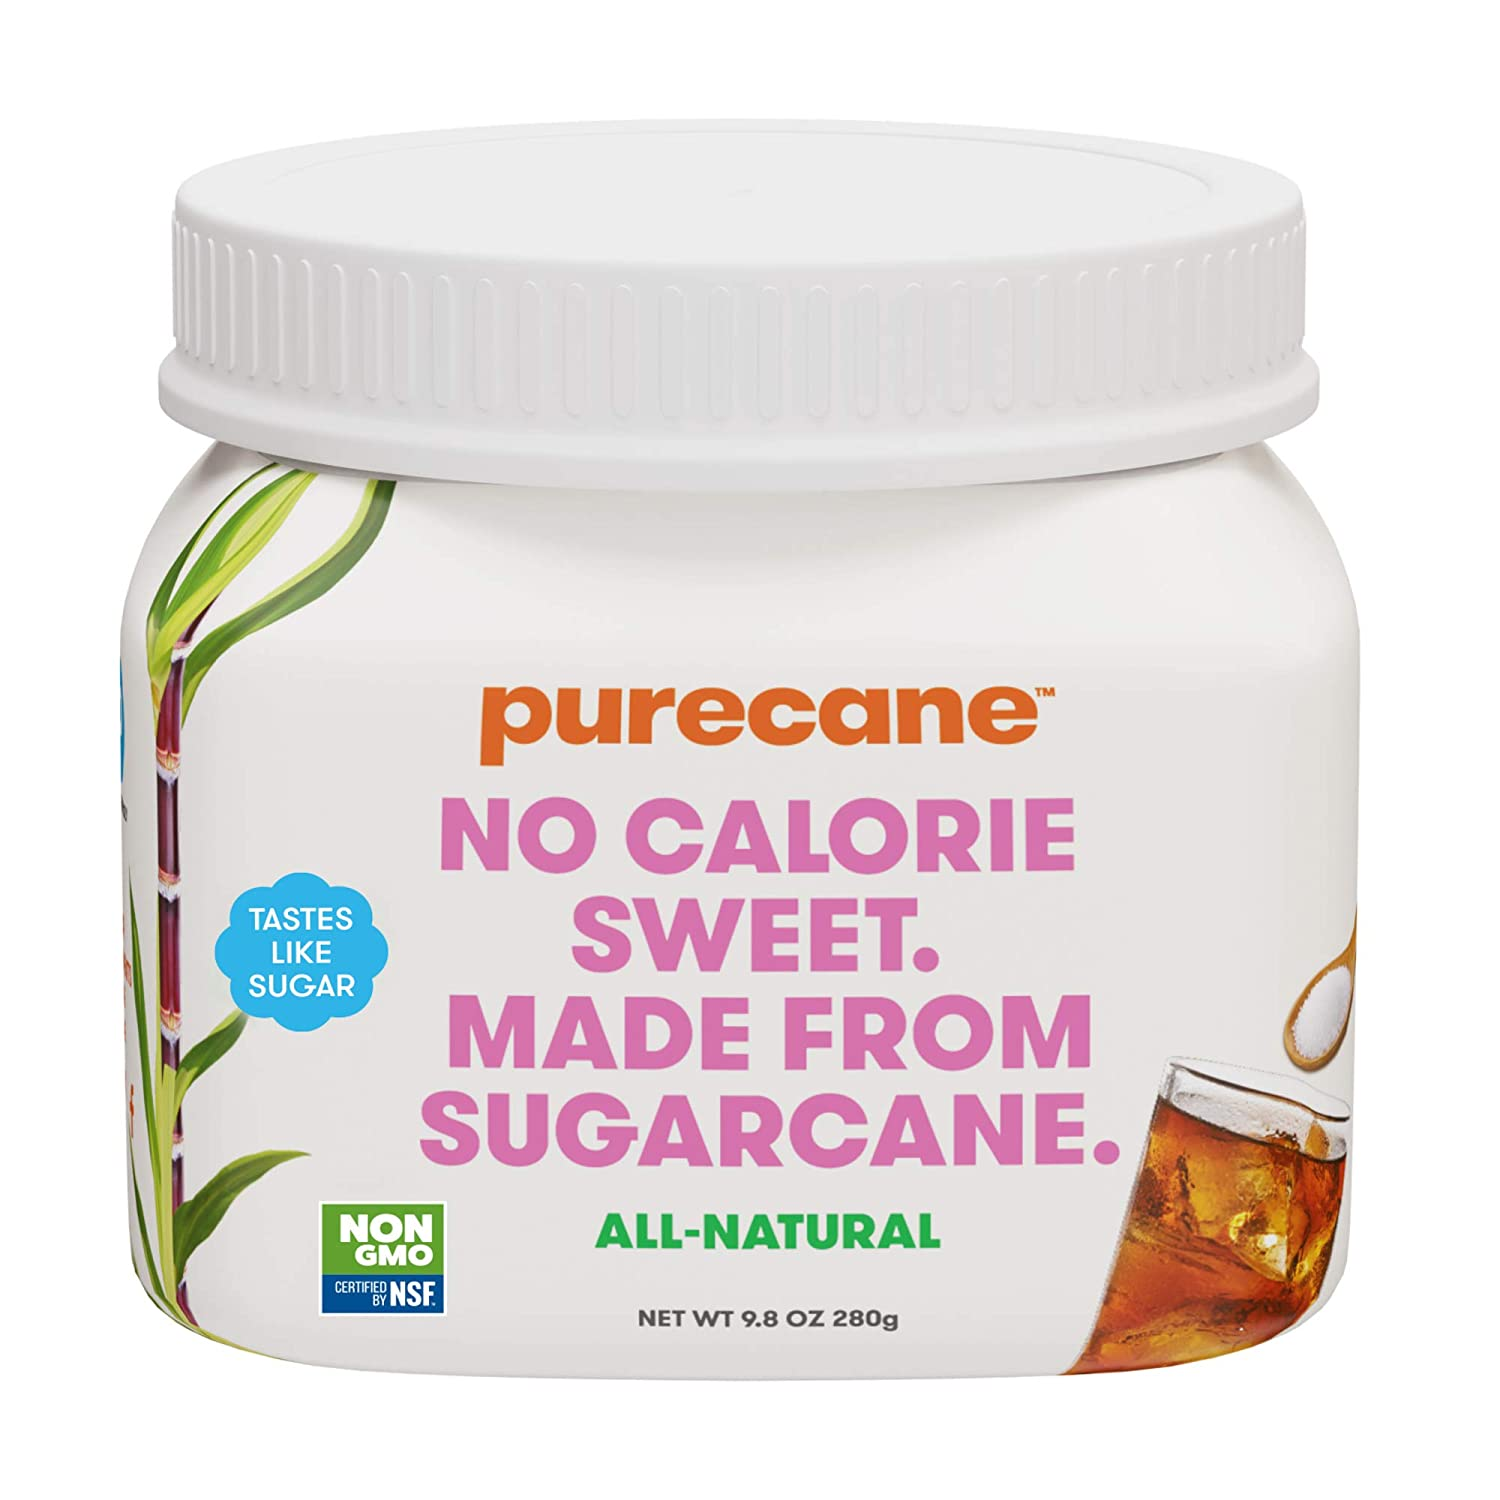 Purecane Sugar Substitute | Zero Calorie Sweetener | Made from All Natural Sugar Cane | Diabetes-friendly | Keto-friendly | Gluten-free | Spoonable Family Canister 9.8oz